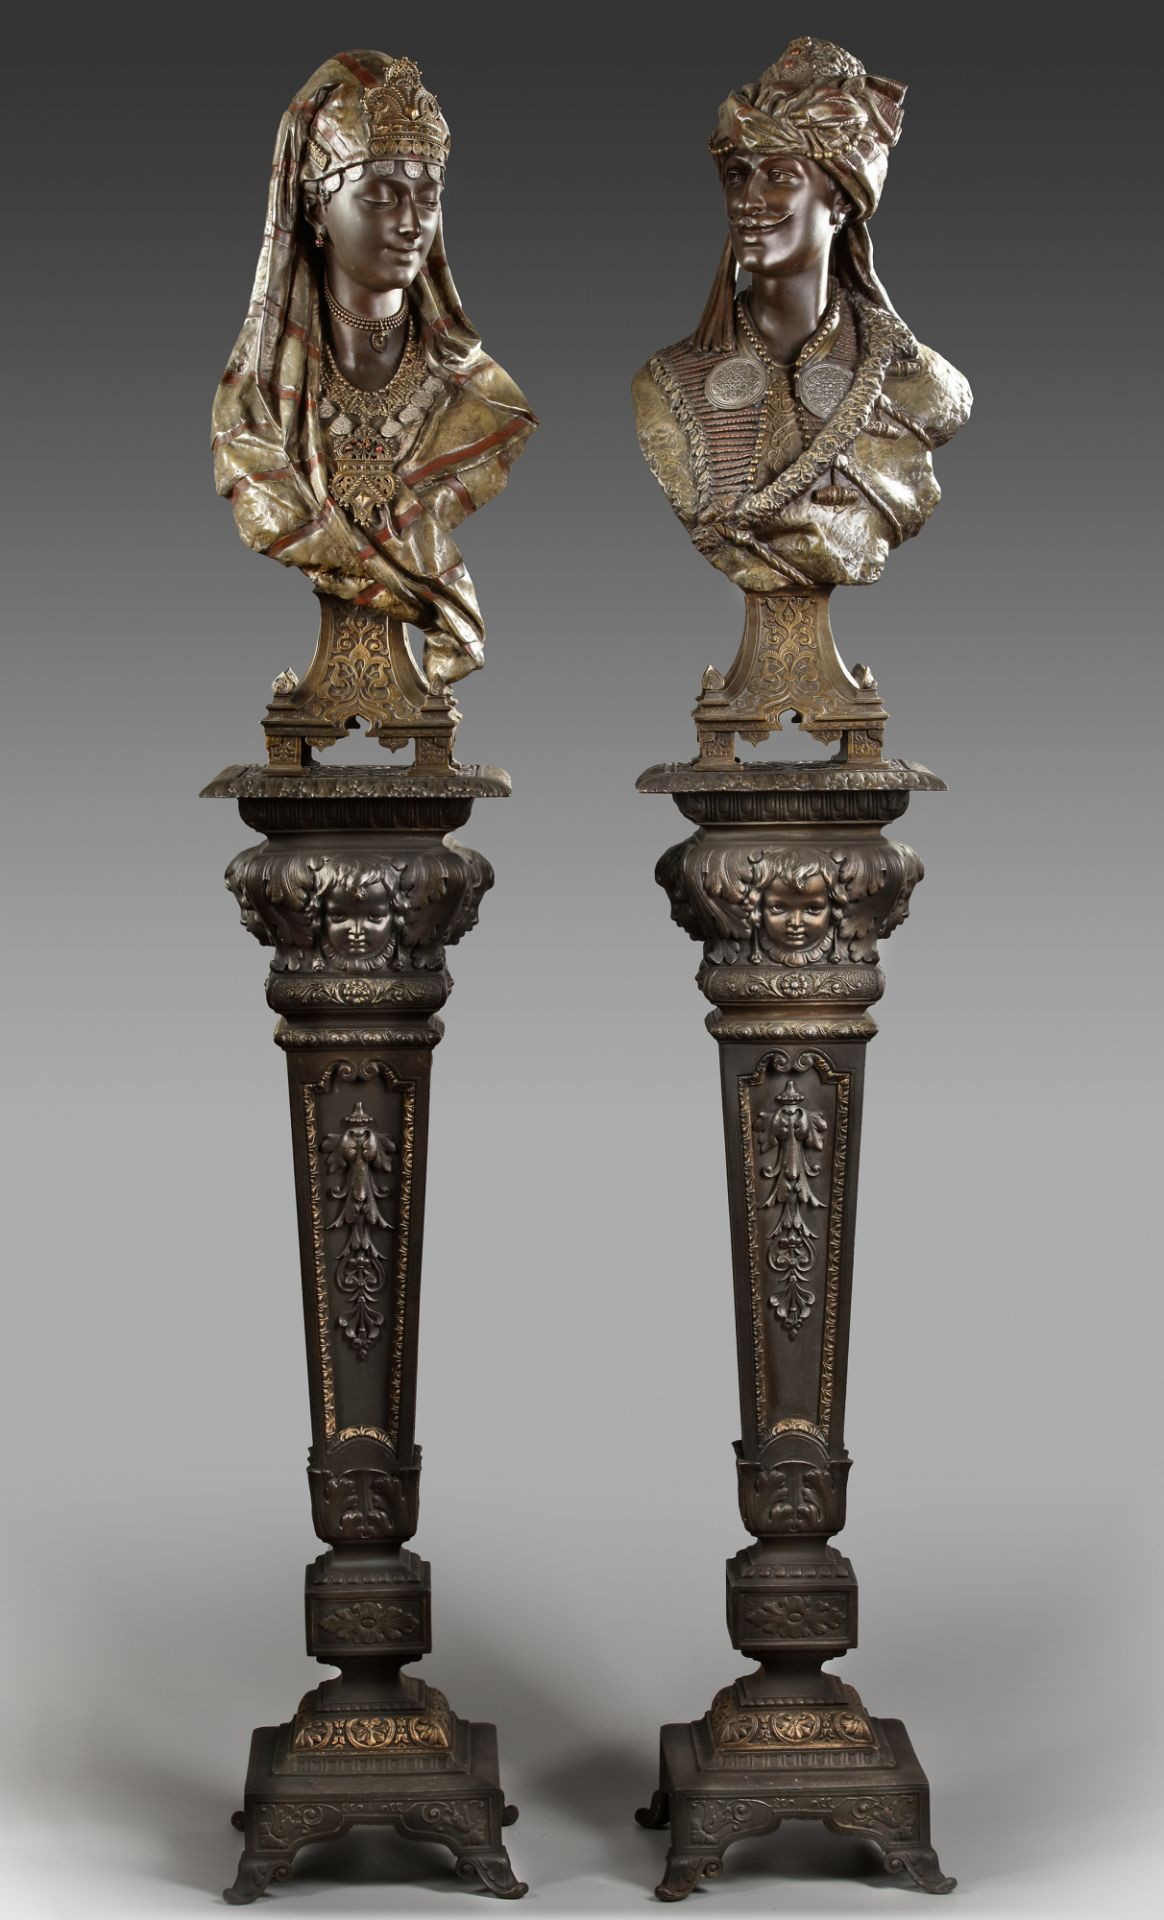 A PAIR OF BUSTS AFTER L. HOTTOT, LATE 19TH CENTURY